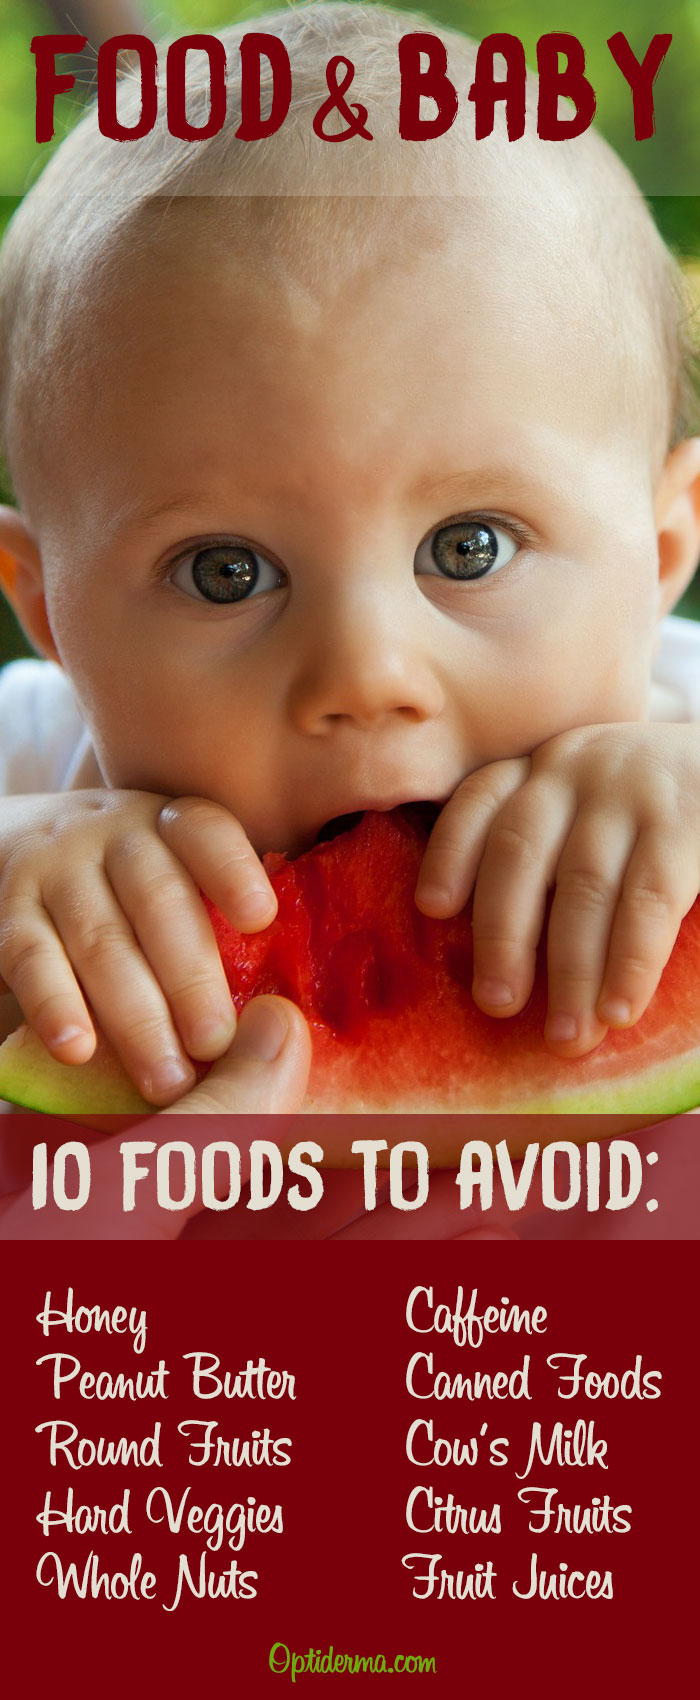 Food & Baby: Foods to Avoid